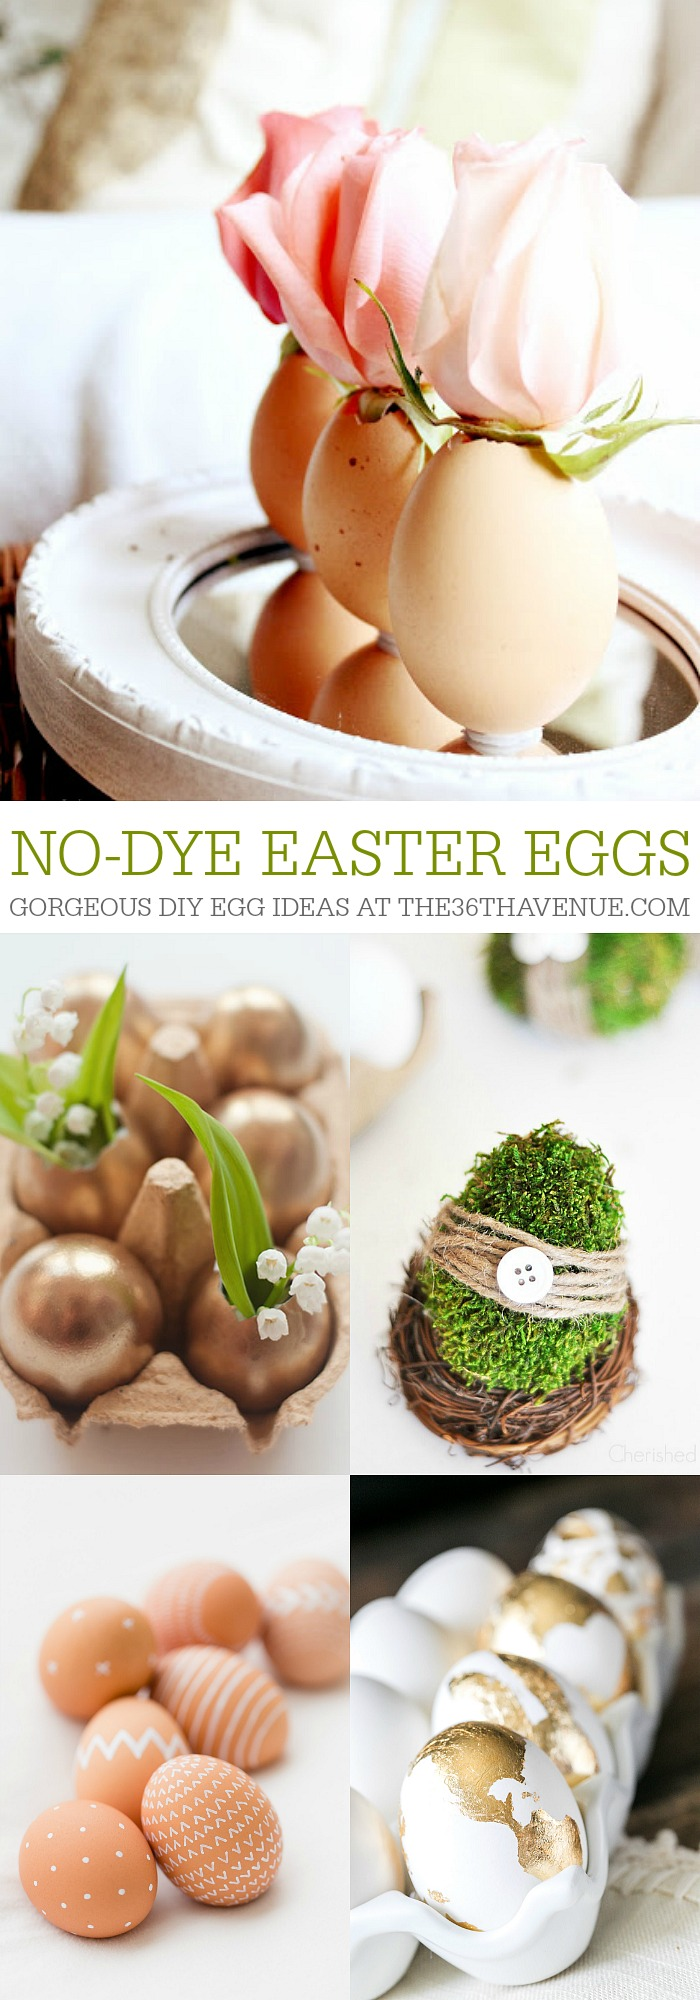 No Dye Easter Eggs at the36thavenue.com Pin it!